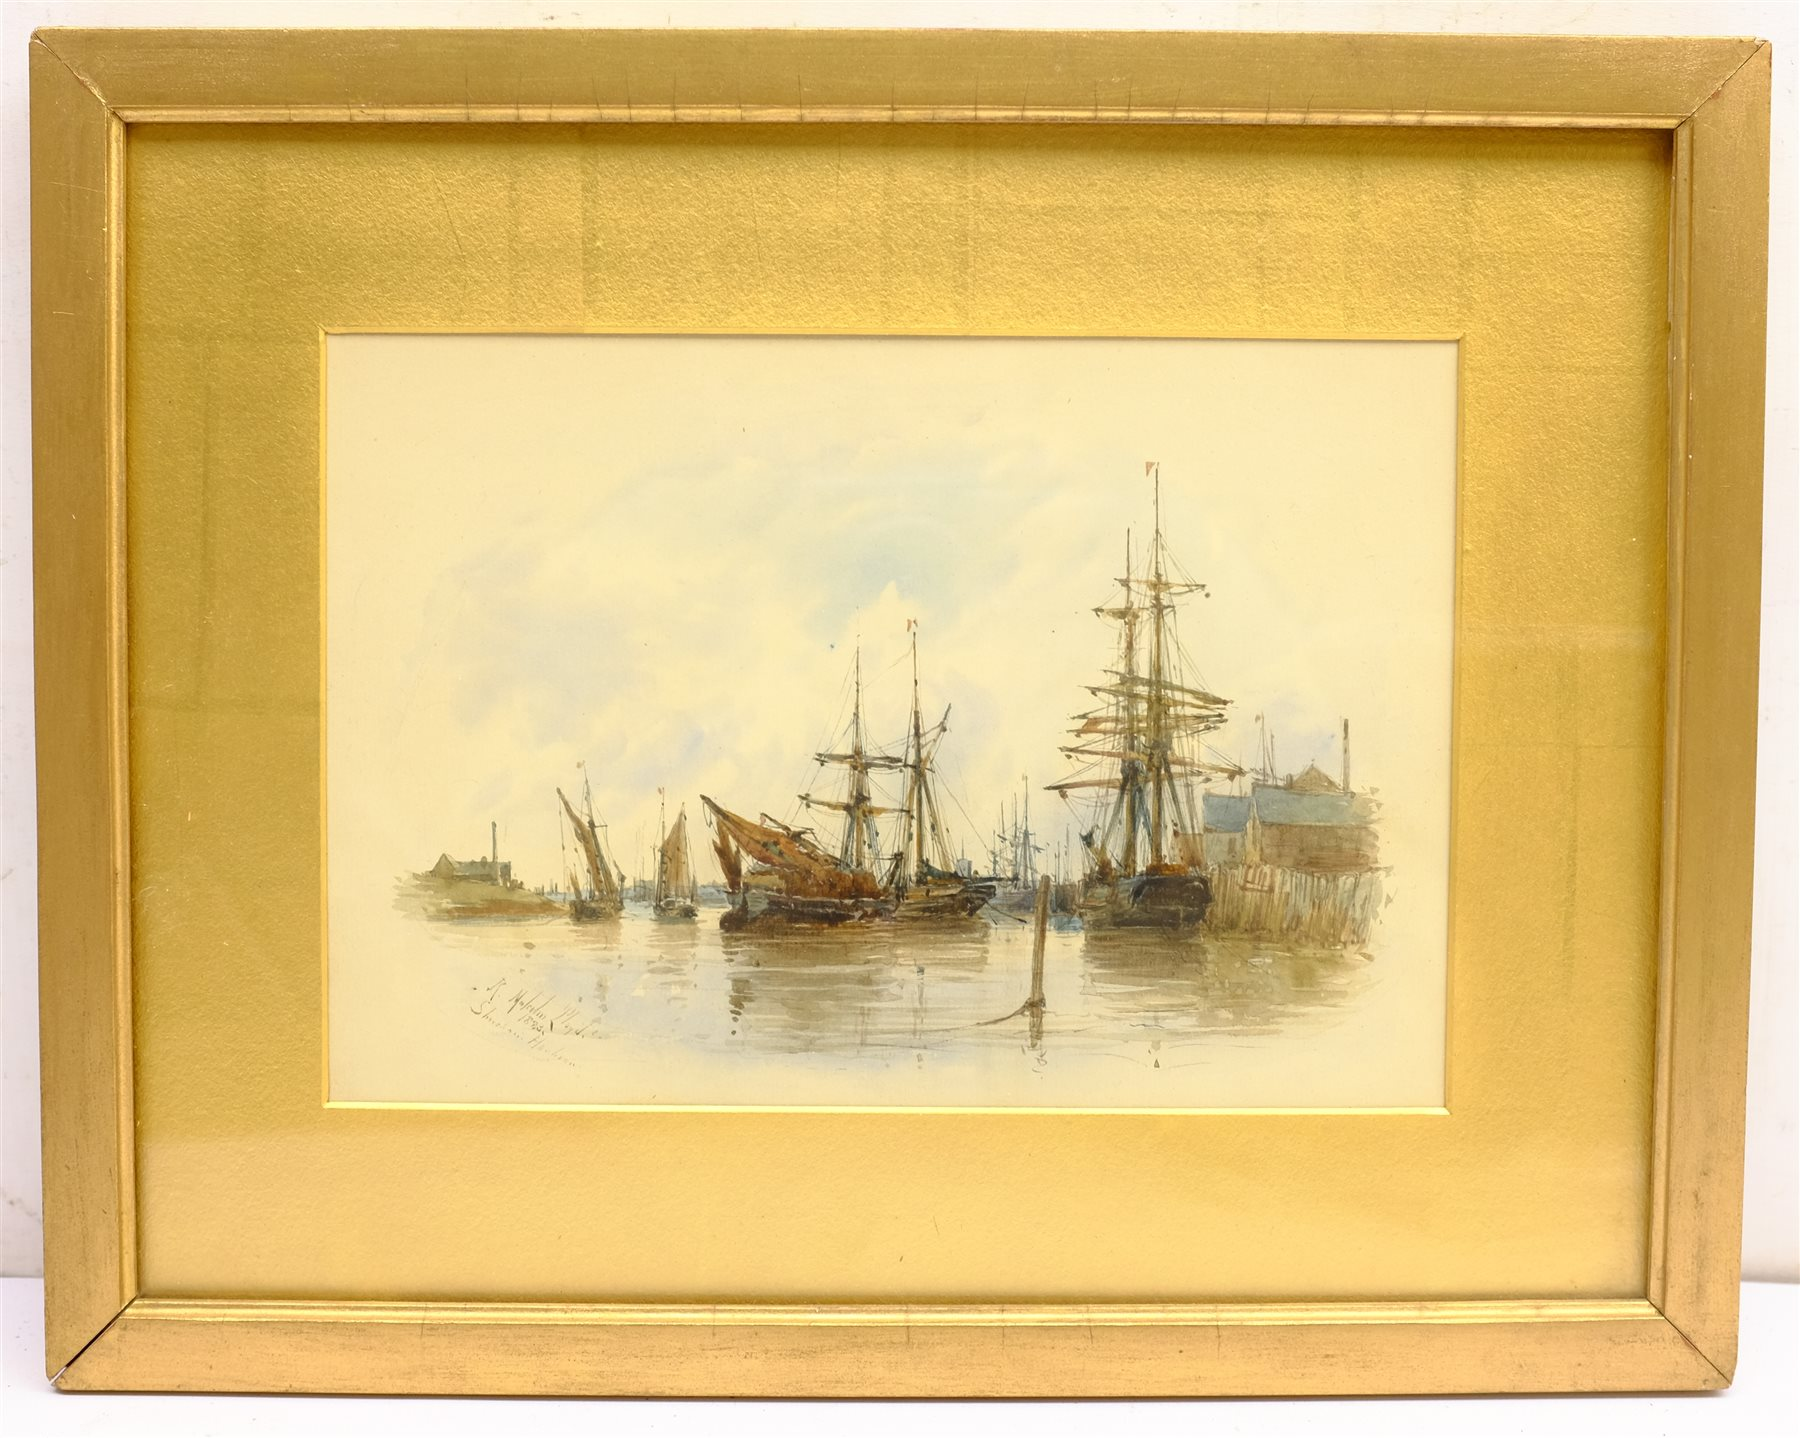 Robert Malcolm Lloyd (British 1859-1907): 'Shoreham Harbour', watercolour signed, titled and dated 1 - Image 3 of 4